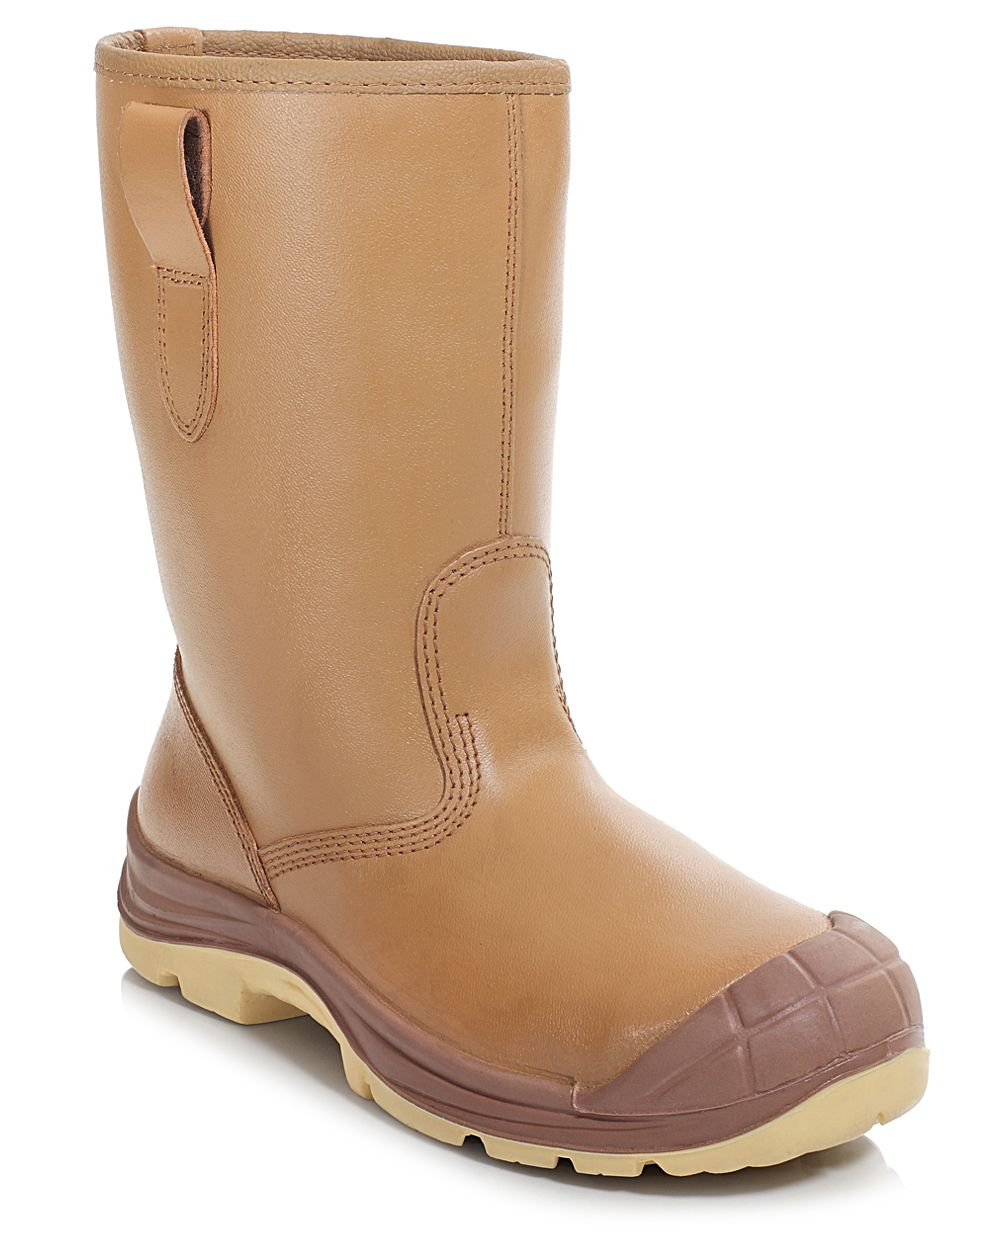 PB42LC Lined Rigger Boot